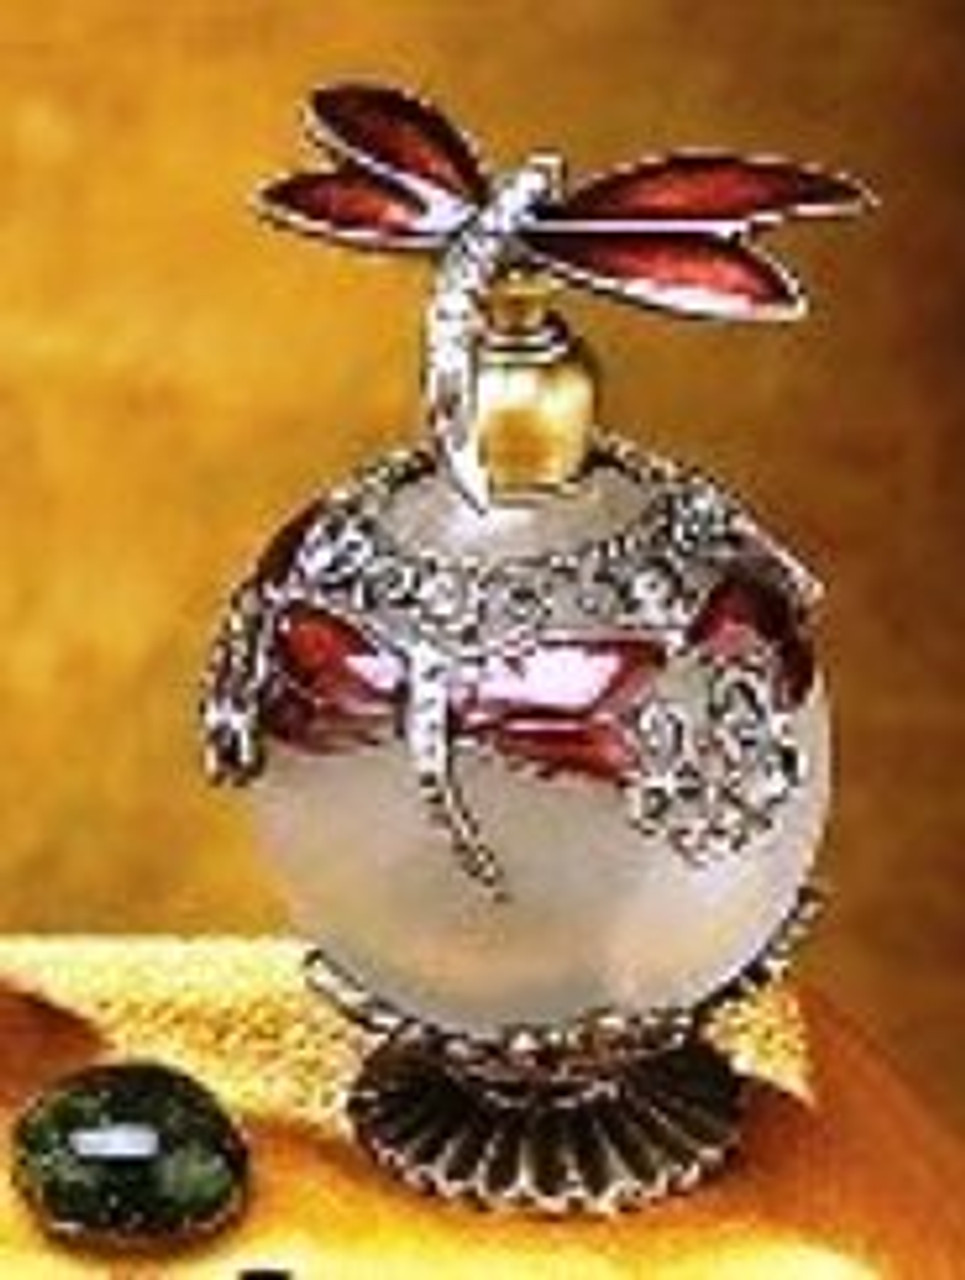 Patti Labelle Type Oil Thescent4you Com Fragrancex.com offers a wide variety of patti labelle inventory. patti labelle type oil